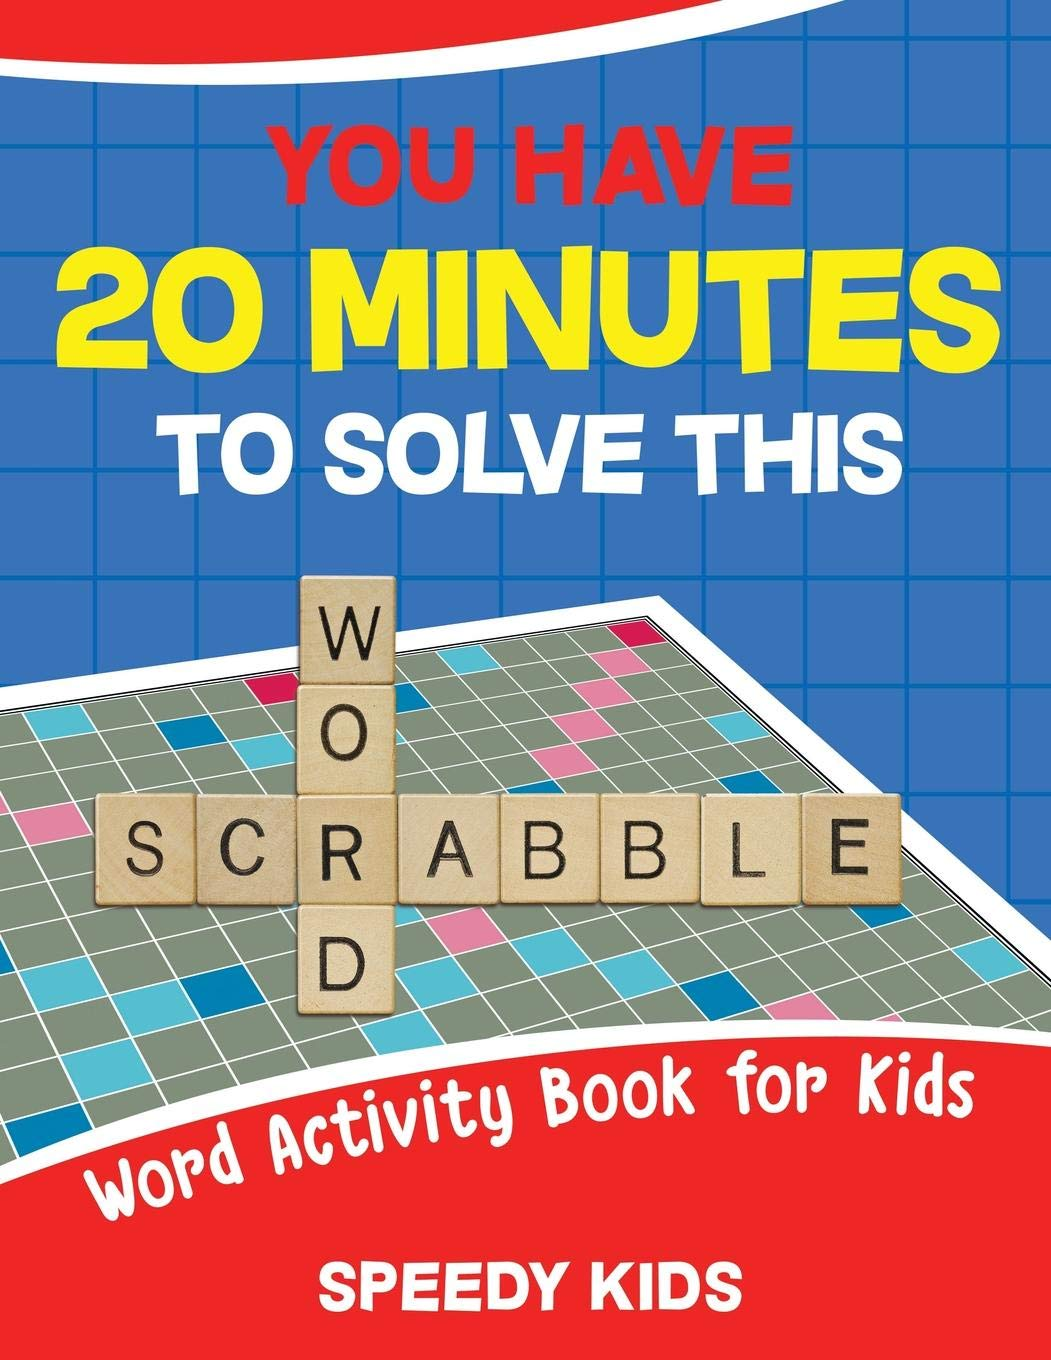 You Have 20 Minutes to Solve This Word Scrabble! Word Activity Book for Kids: Amazon.es: Kids, Speedy: Libros en idiomas extranjeros